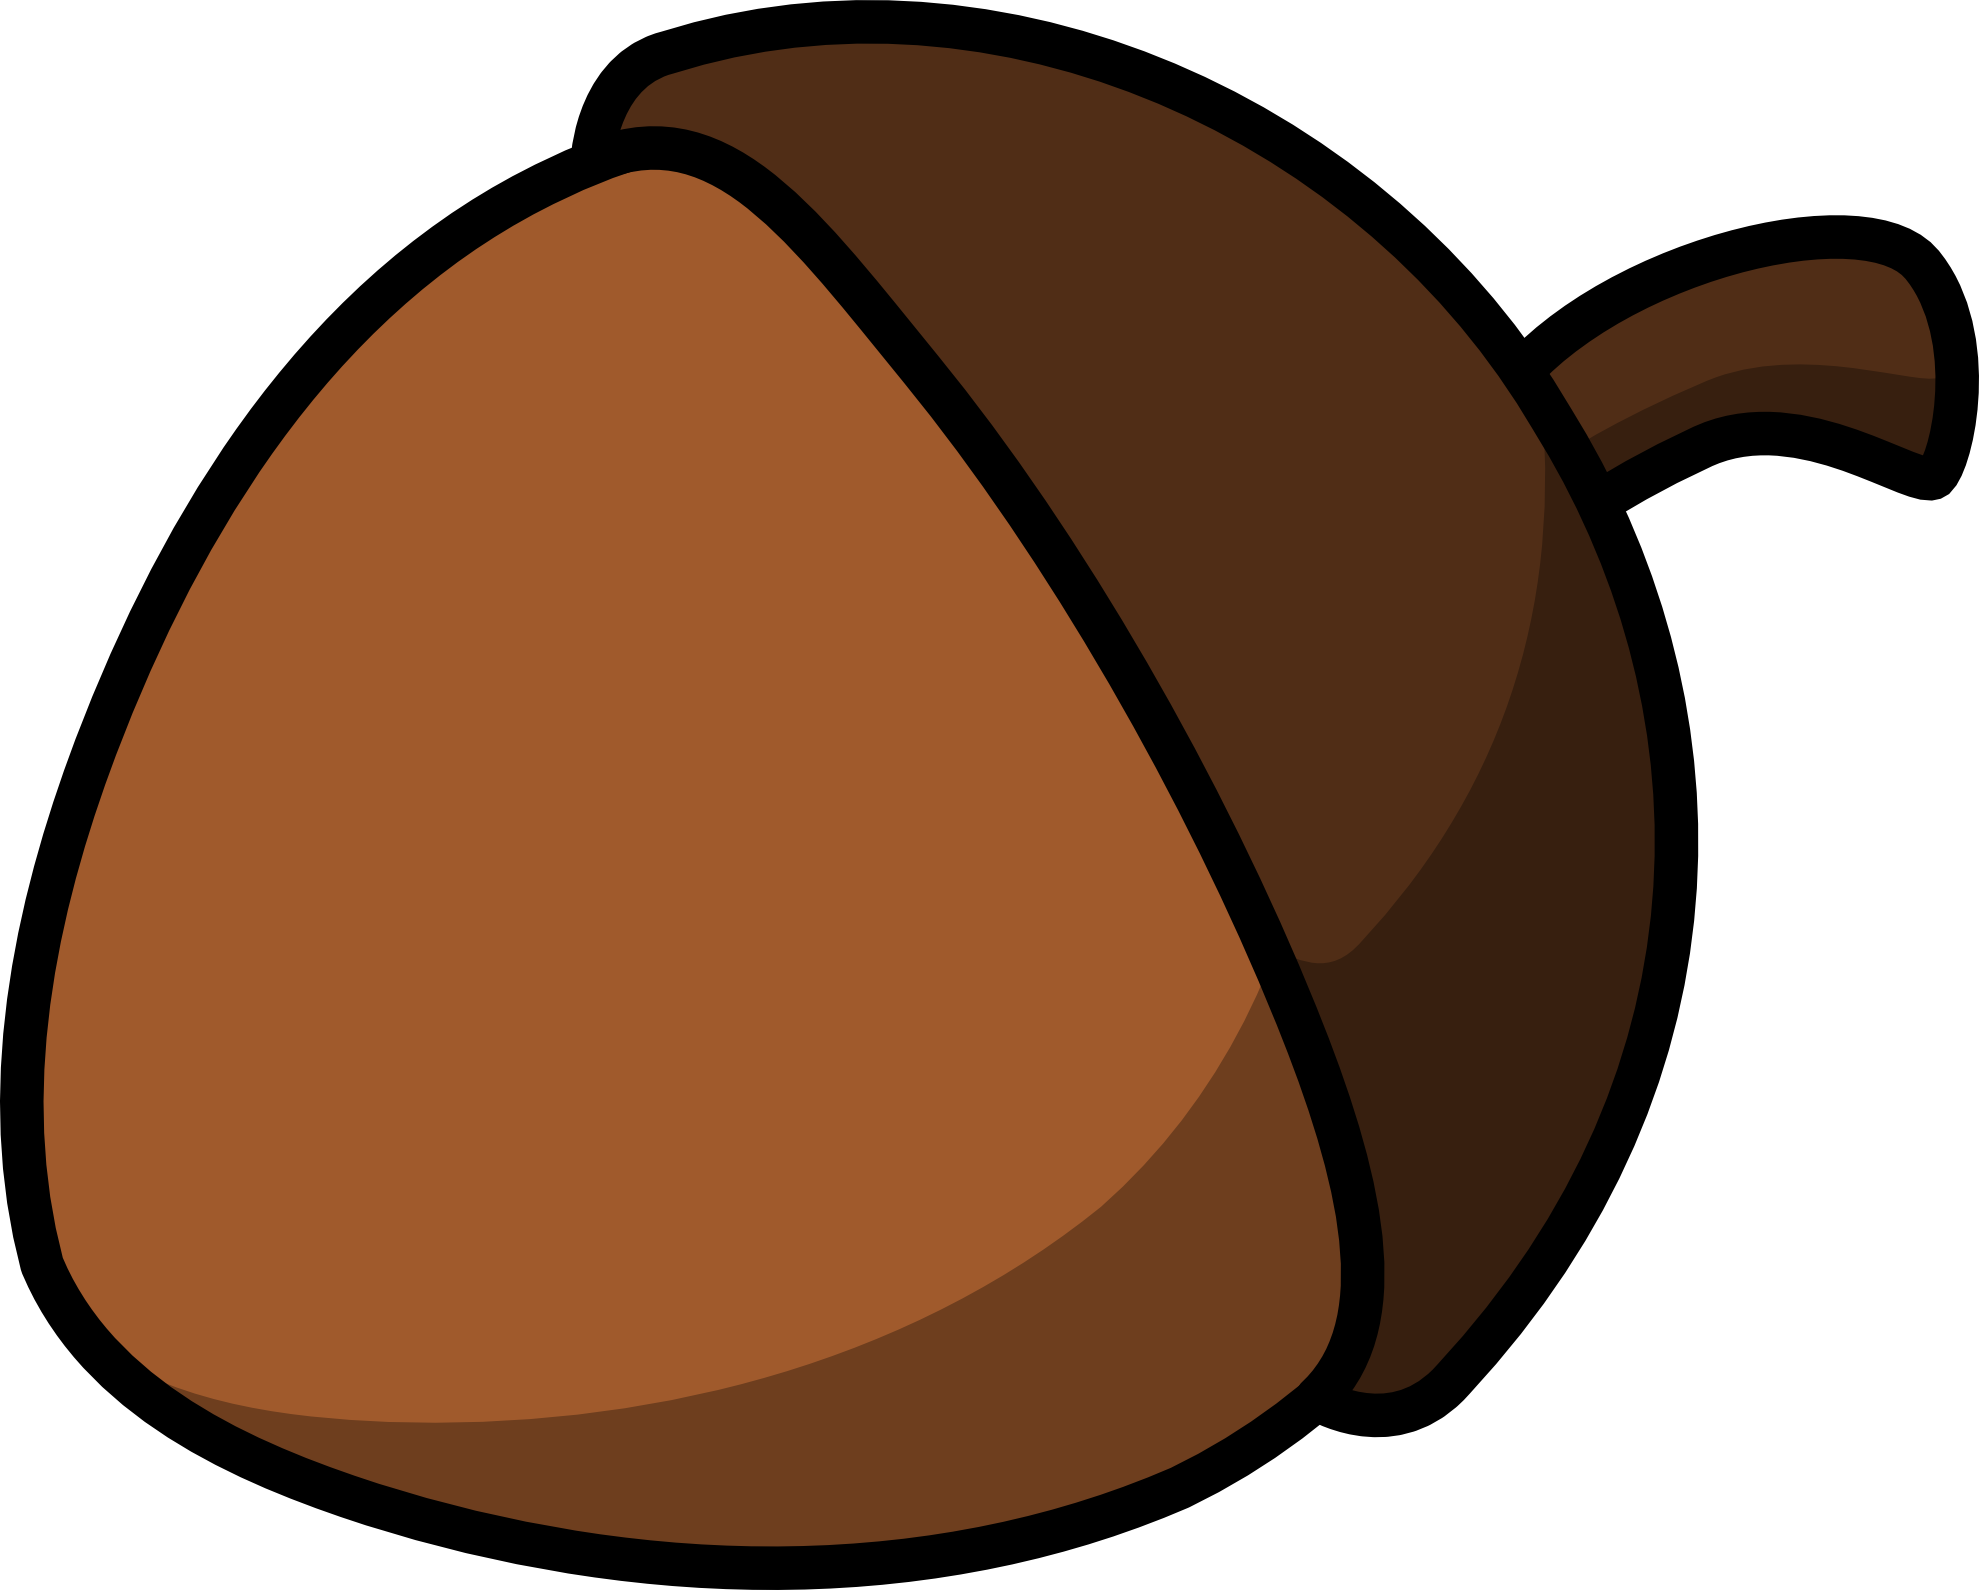 Acorn transparent cartoon pile. Image freeuse black